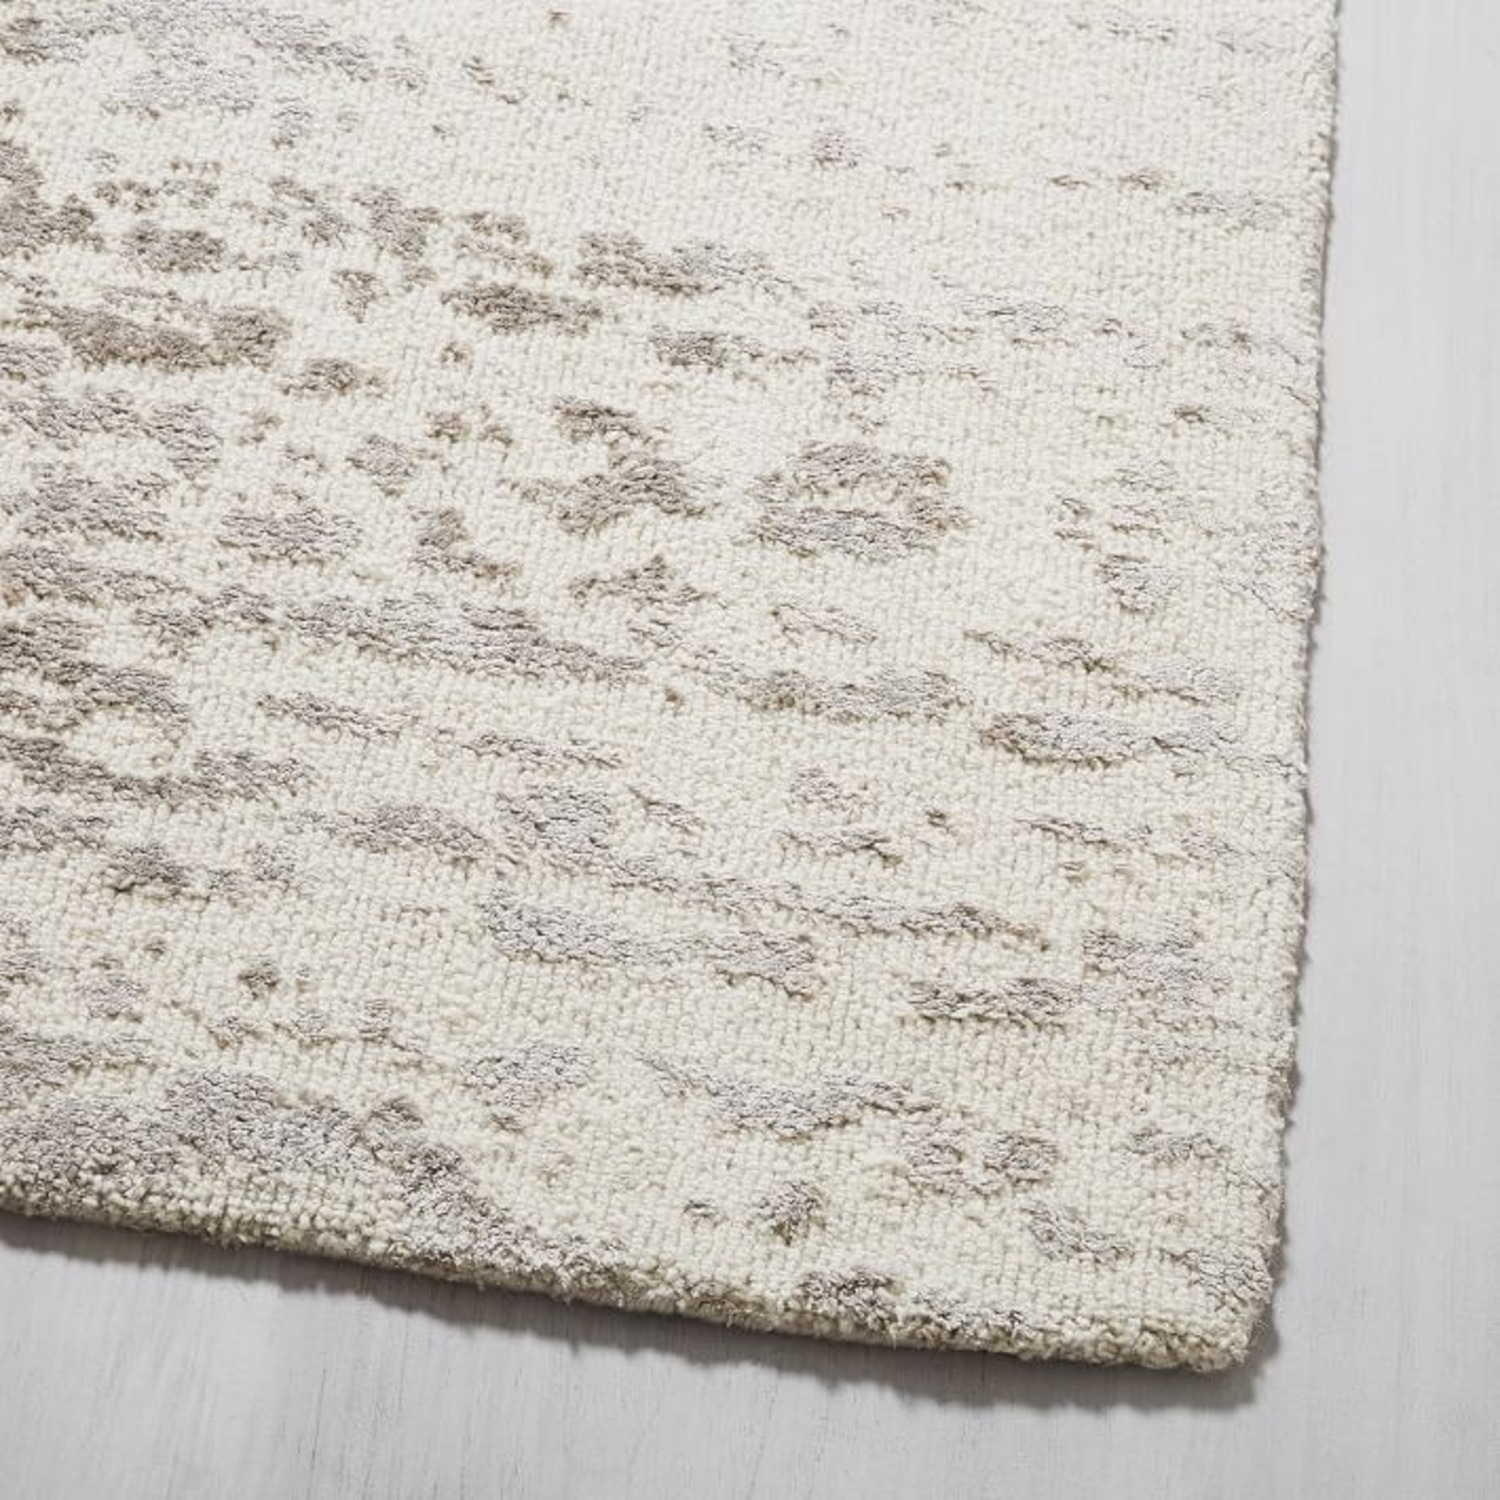 West Elm Foil Diamonds Rug - image-2